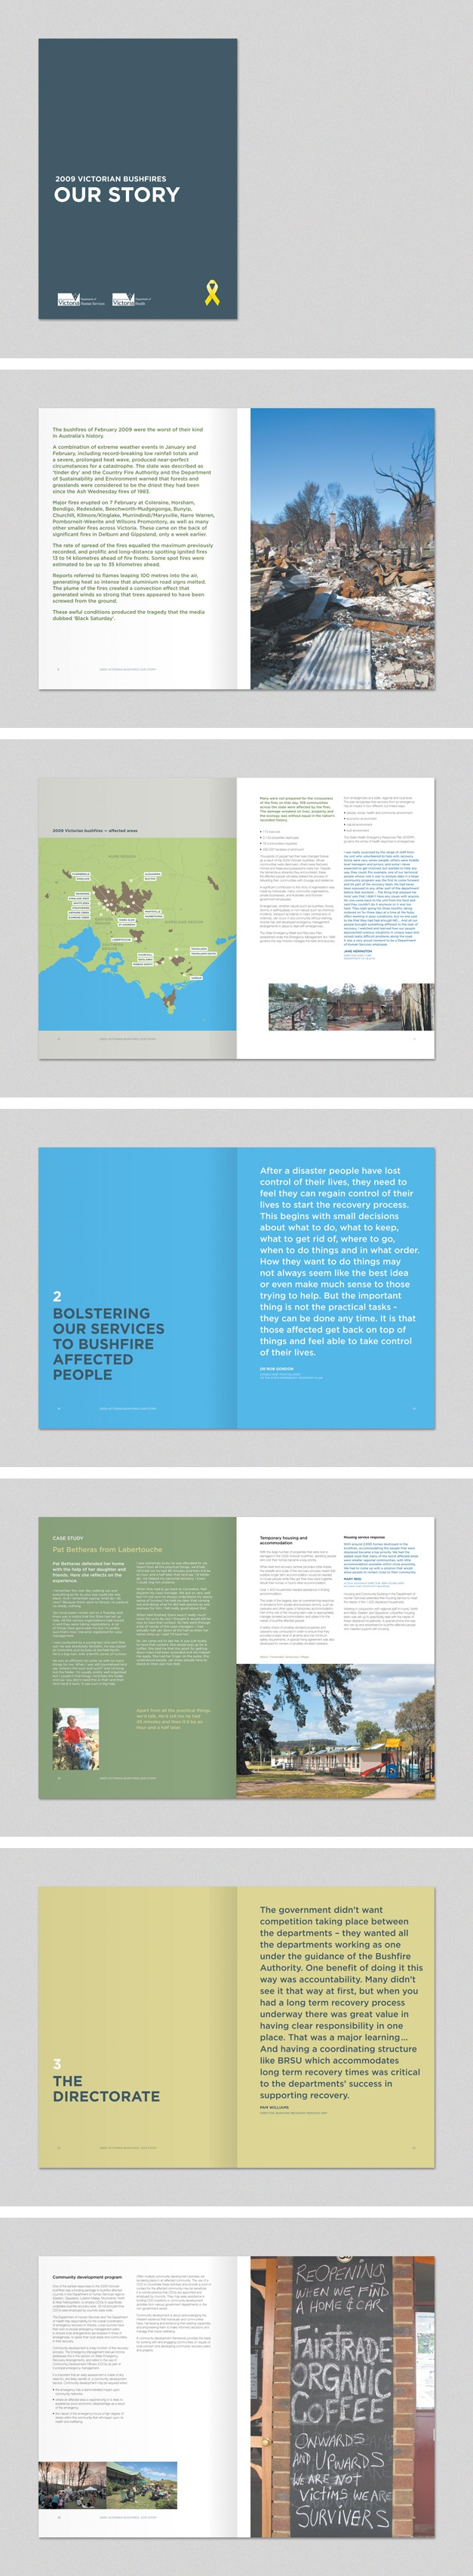 Book for Department of Human Services on the 2009 Victorian bushfires. www.fenton.com.au #communication #PR #branding #graphicdesign